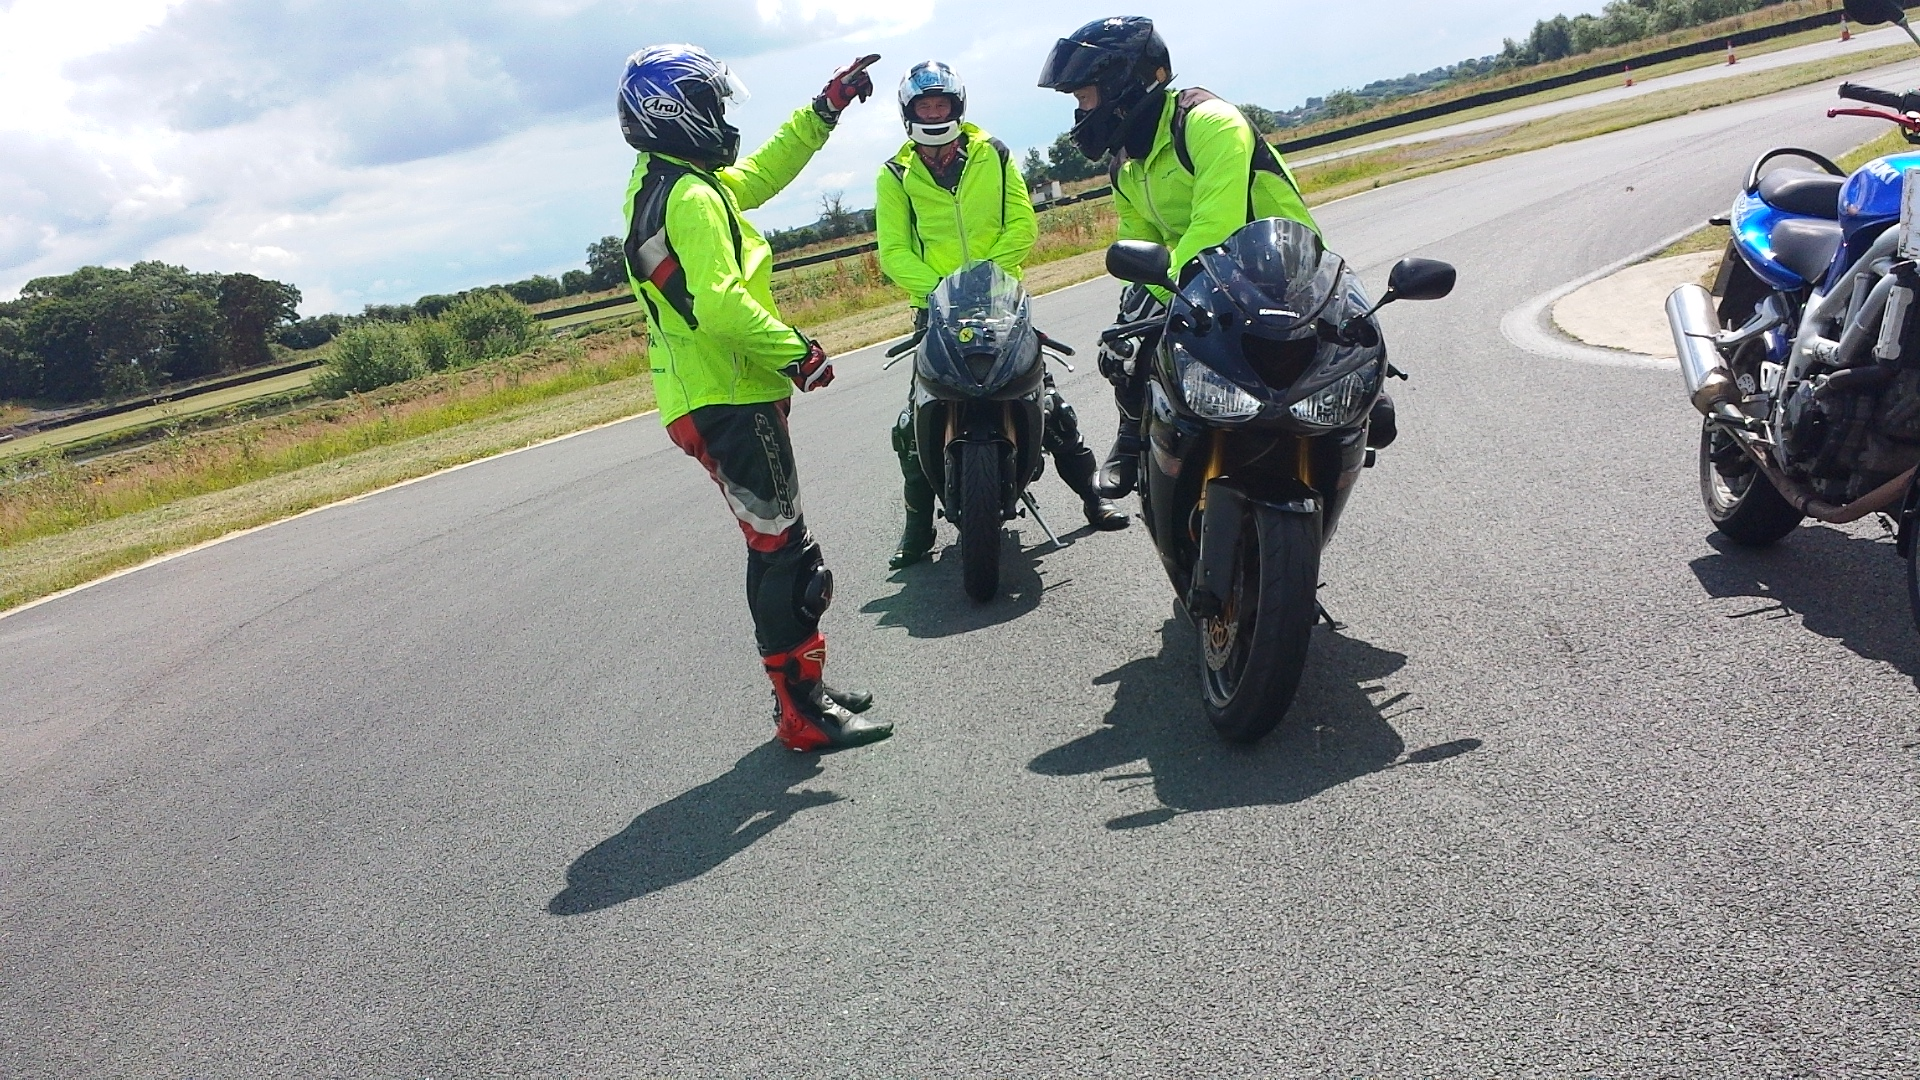 Motorbike instruction for test